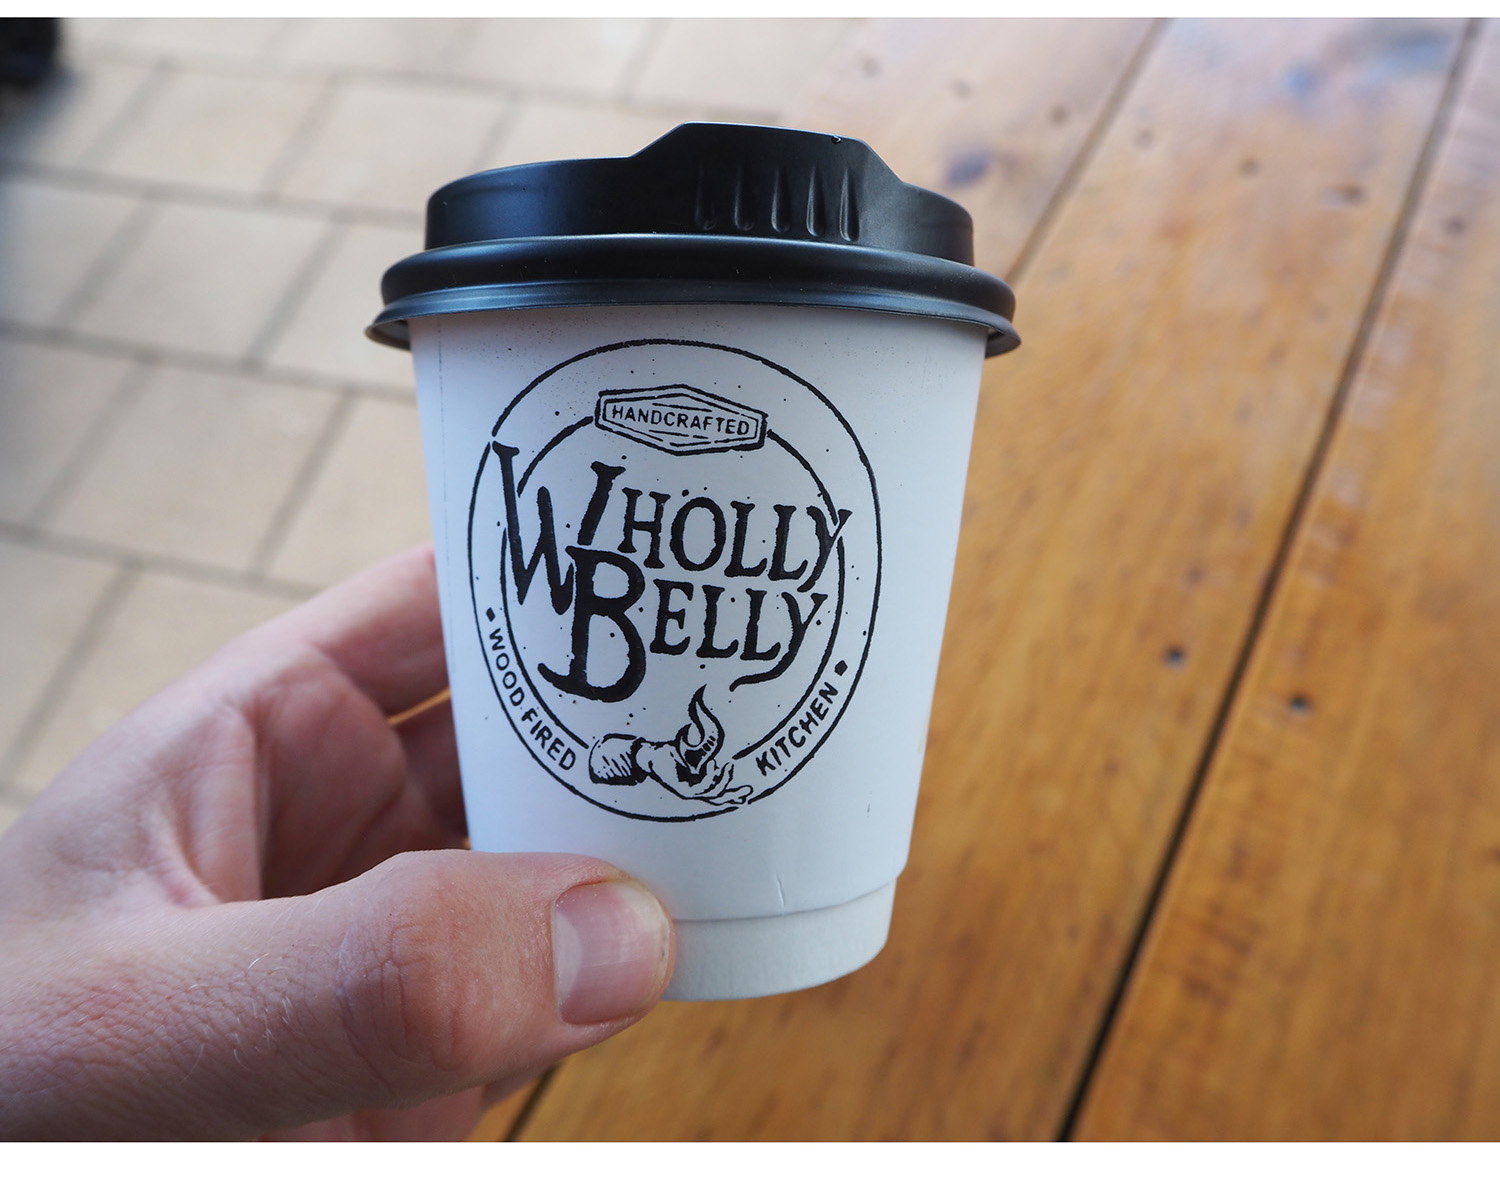 wholly belly cup.jpg